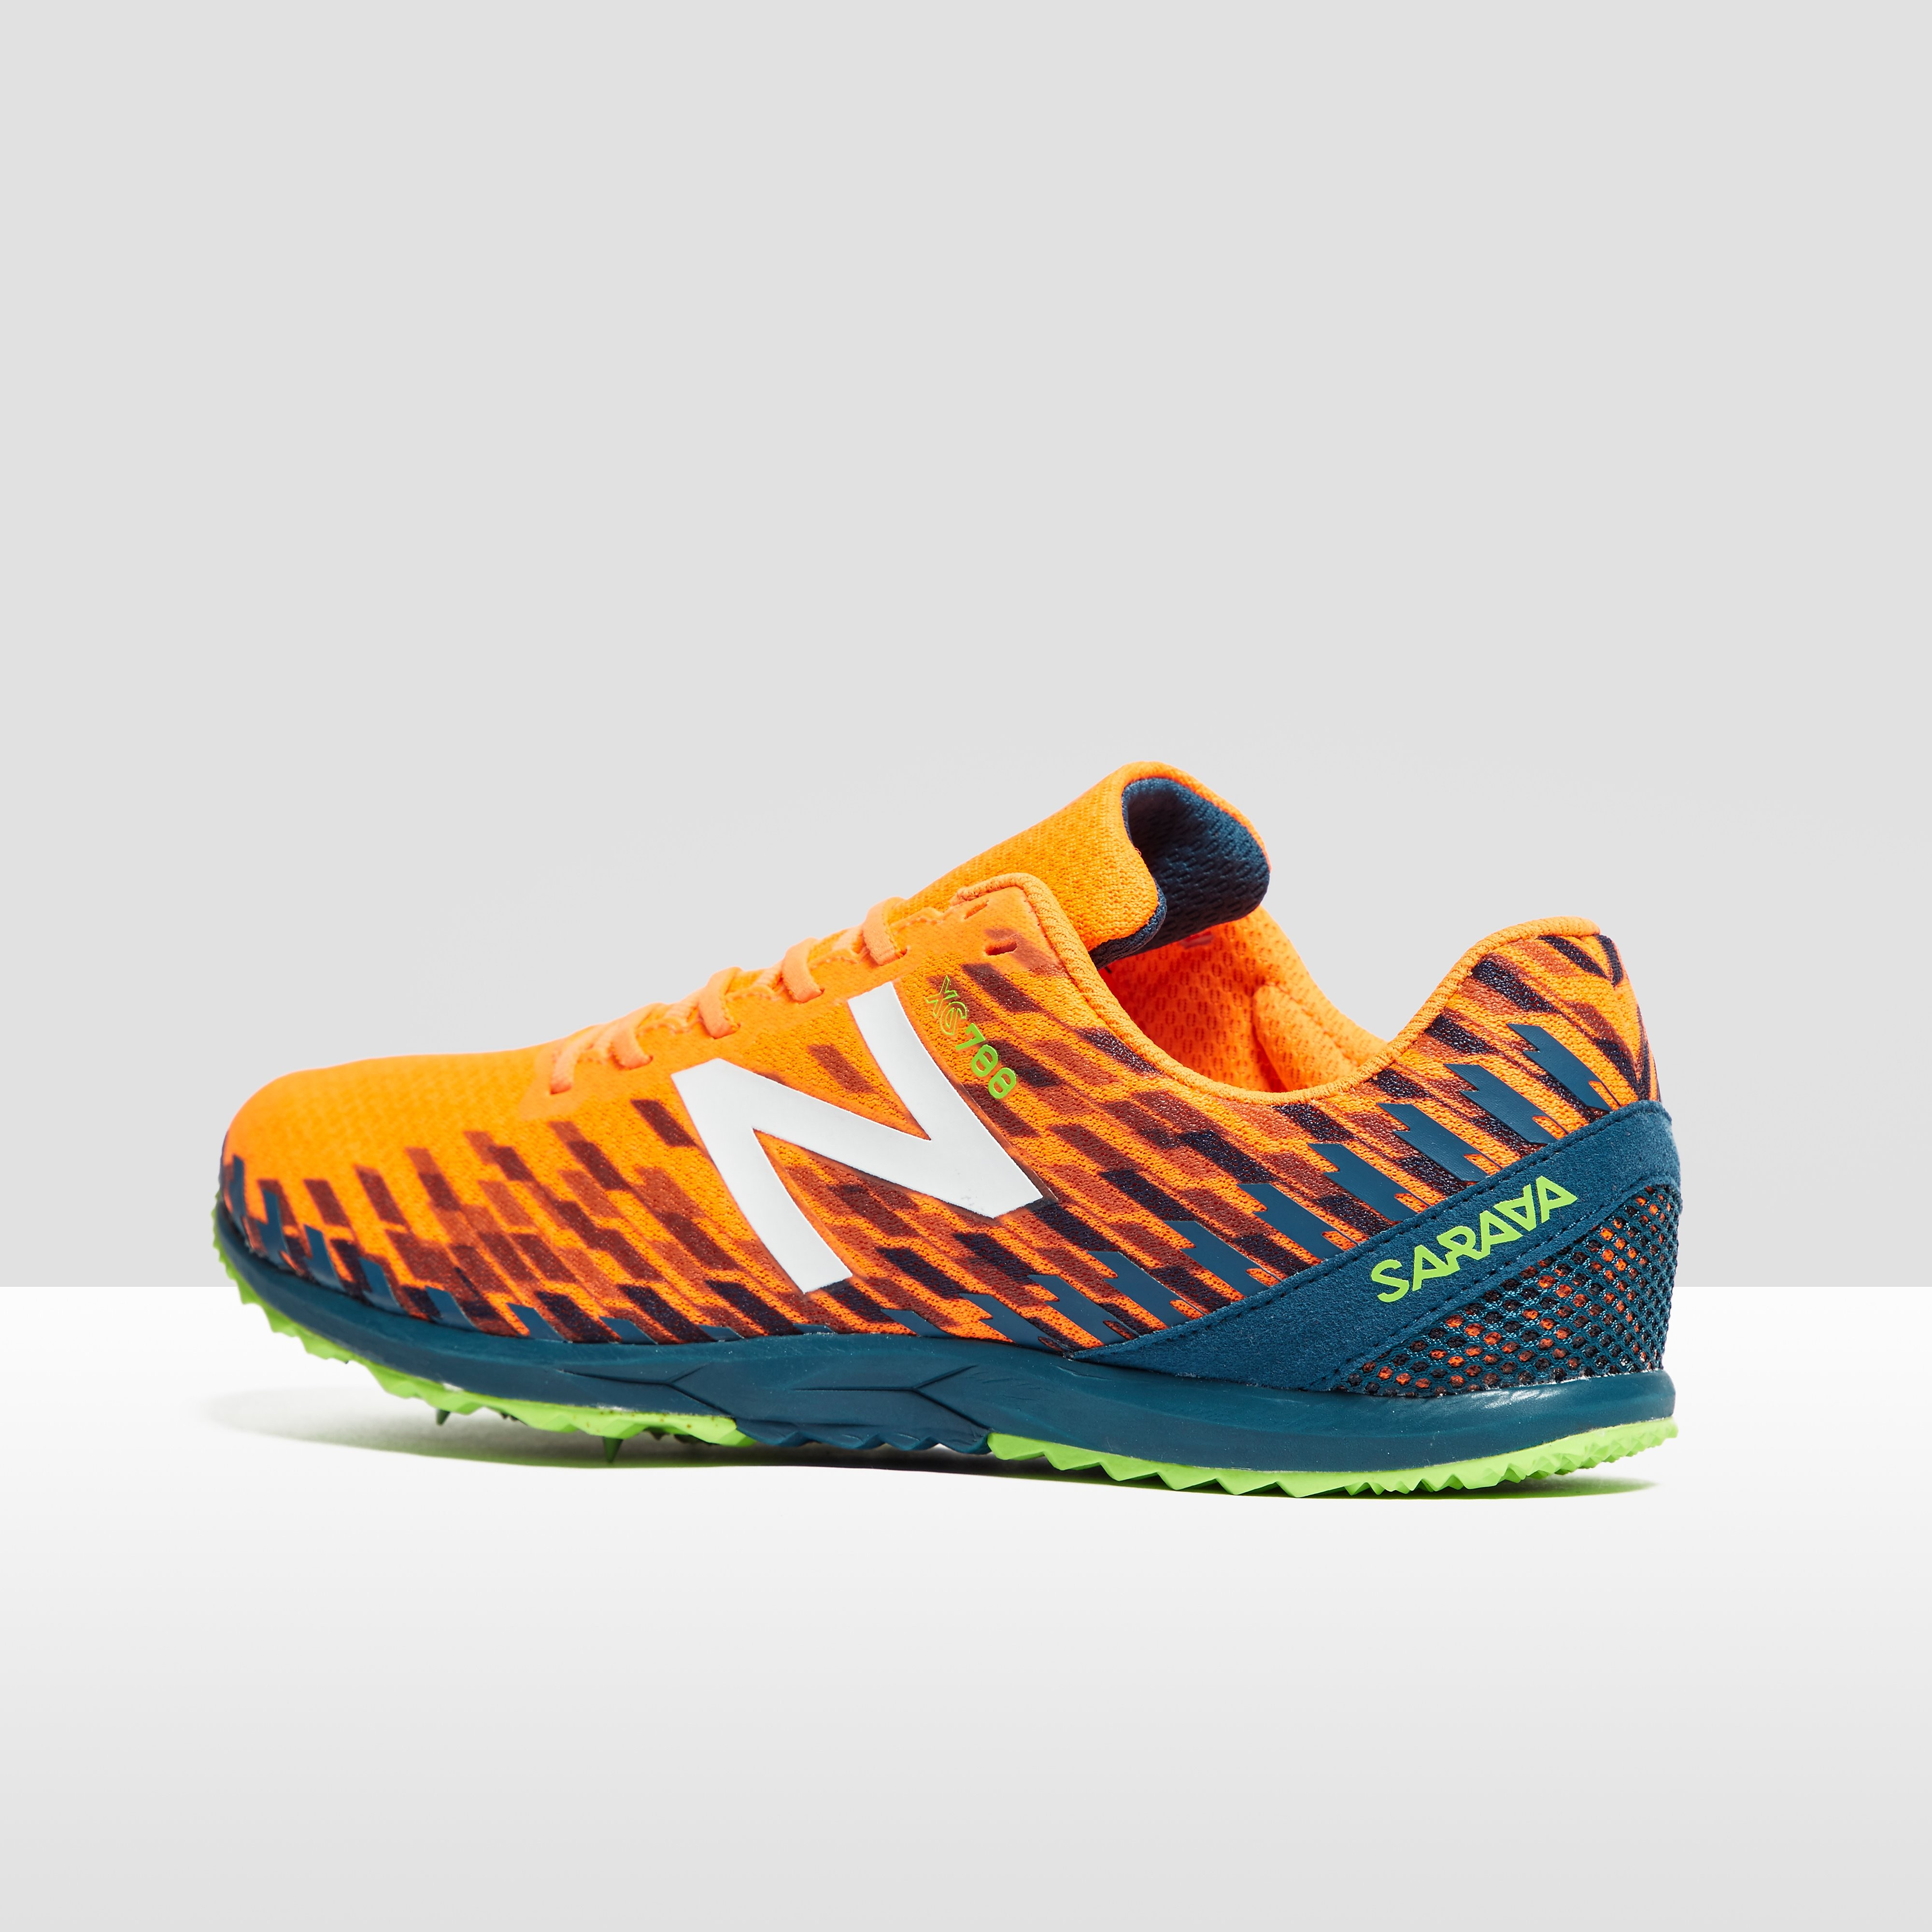 New Balance XC700v5 Men's Cross Country Running Shoes